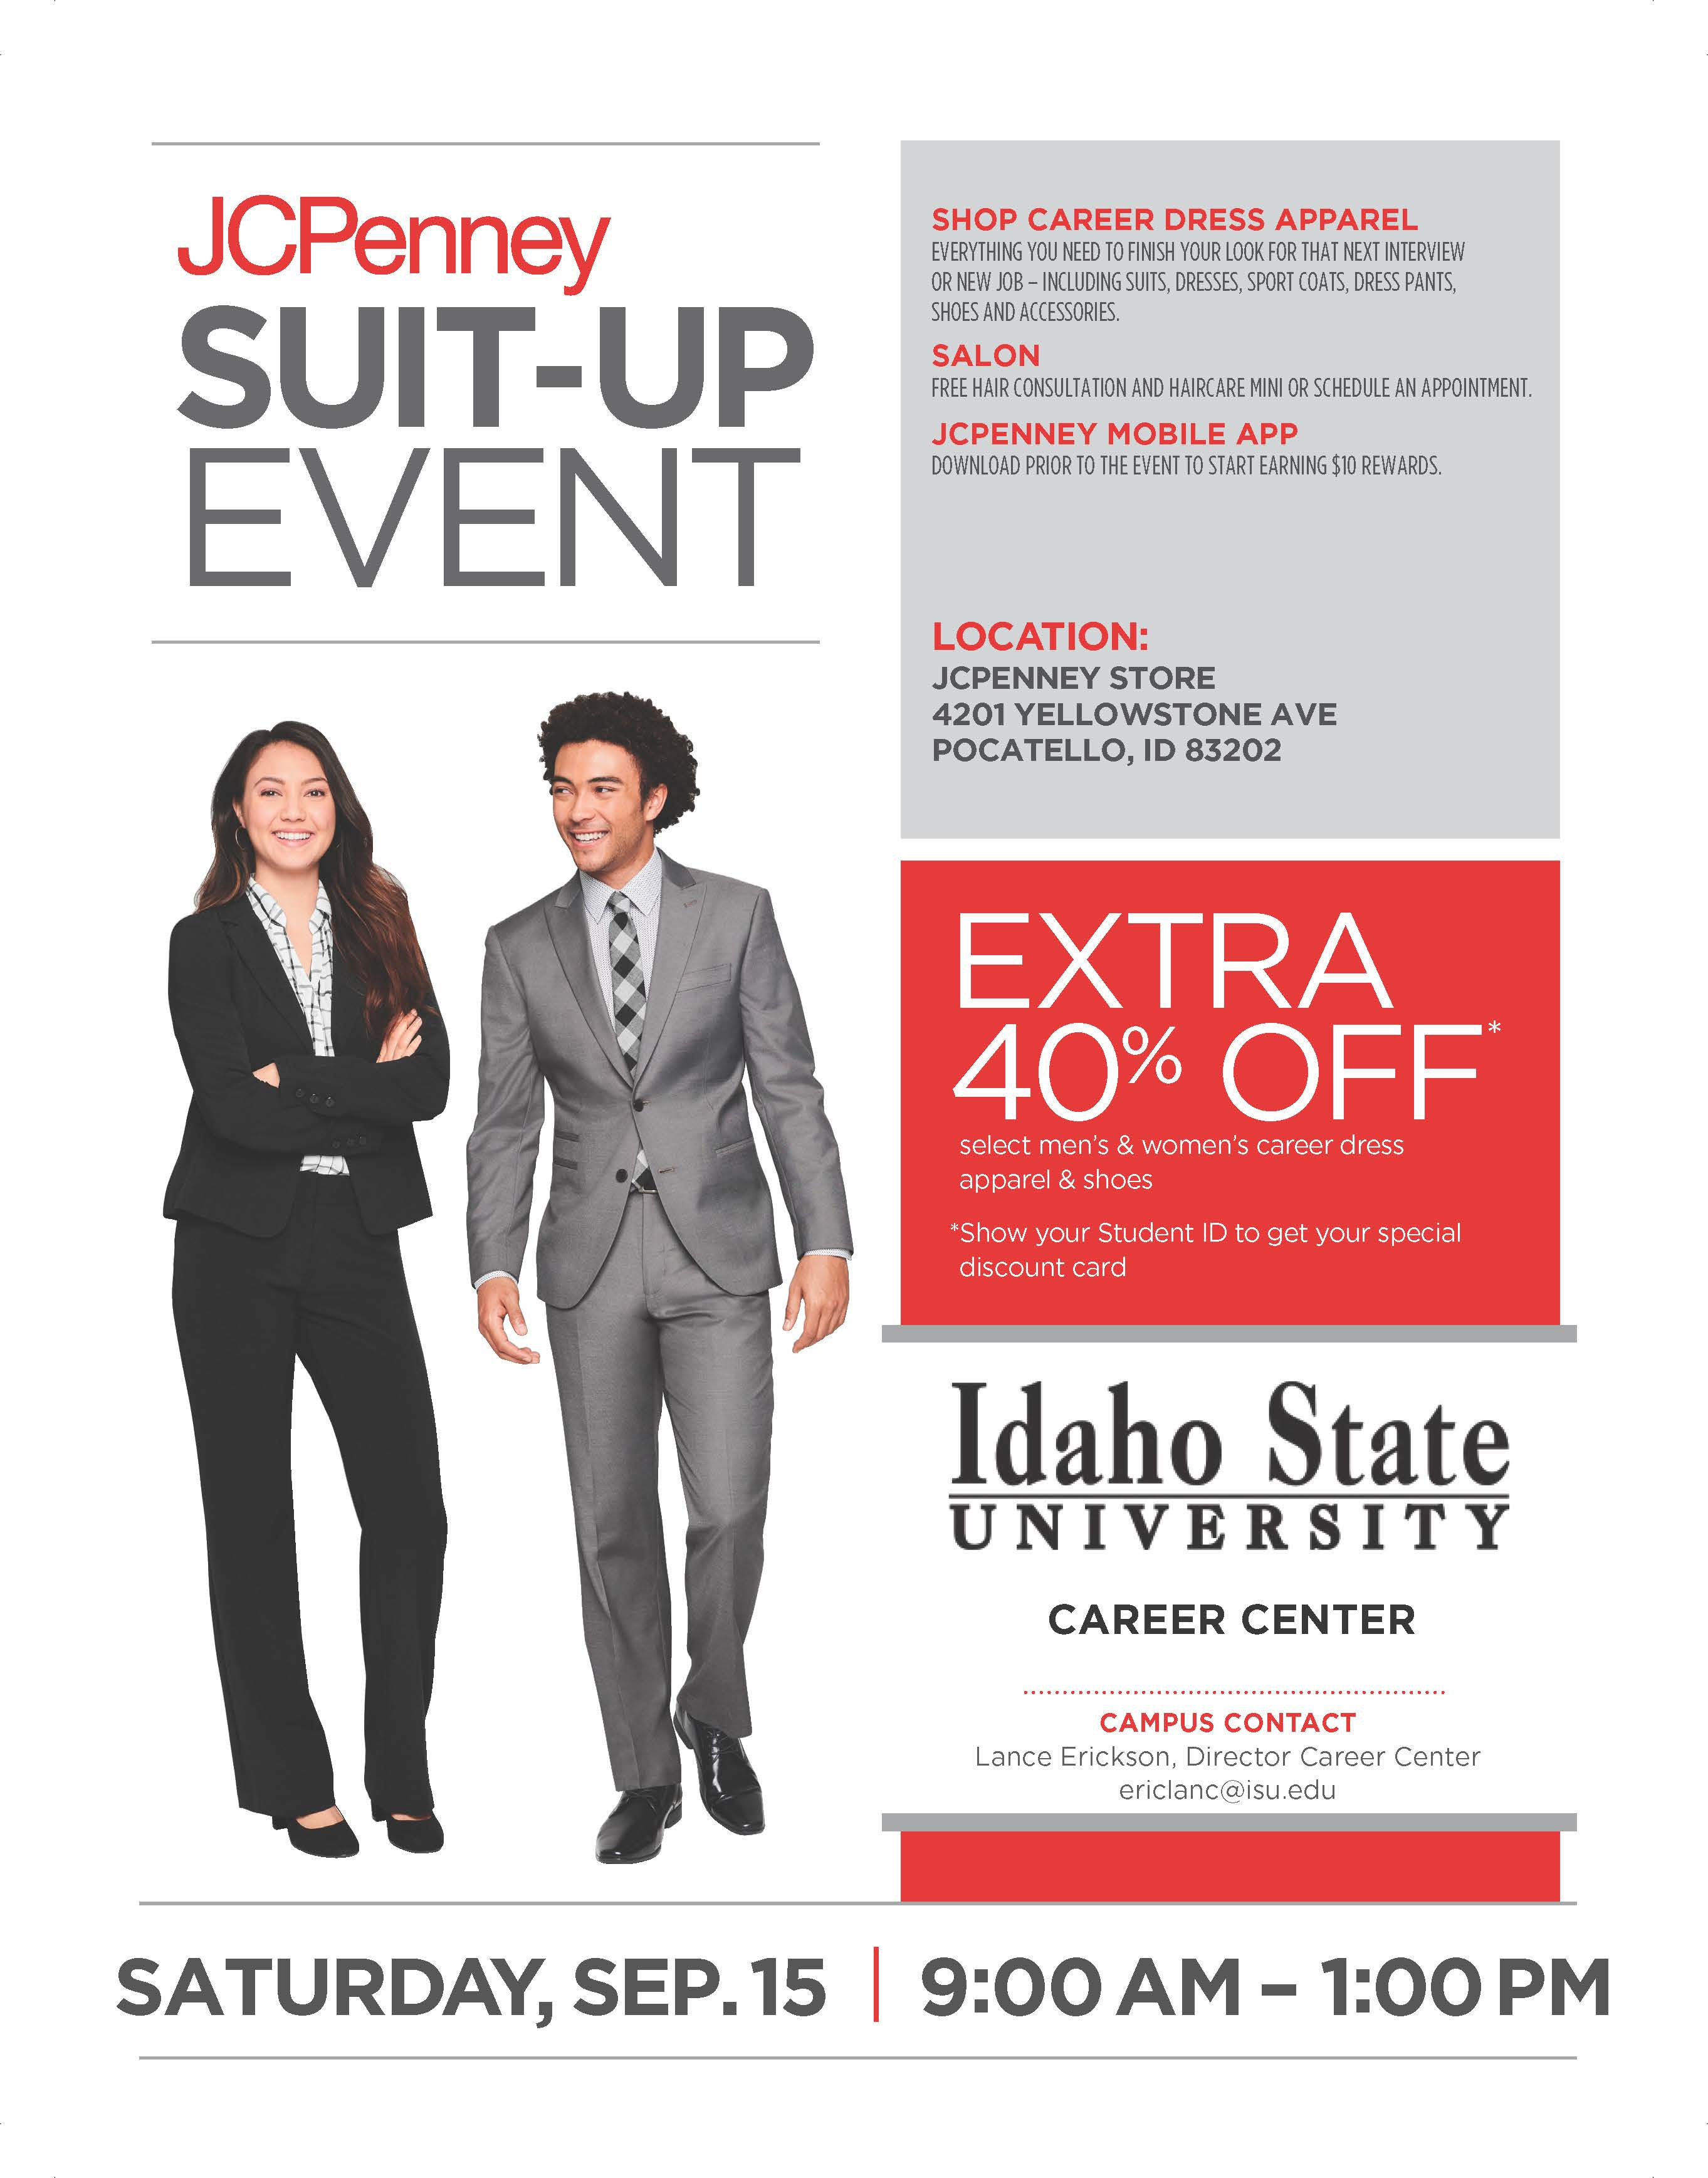 JCPenney suit up event flyer 40% off for ISU students on Saturday Sept 15th from 9am to 1pm